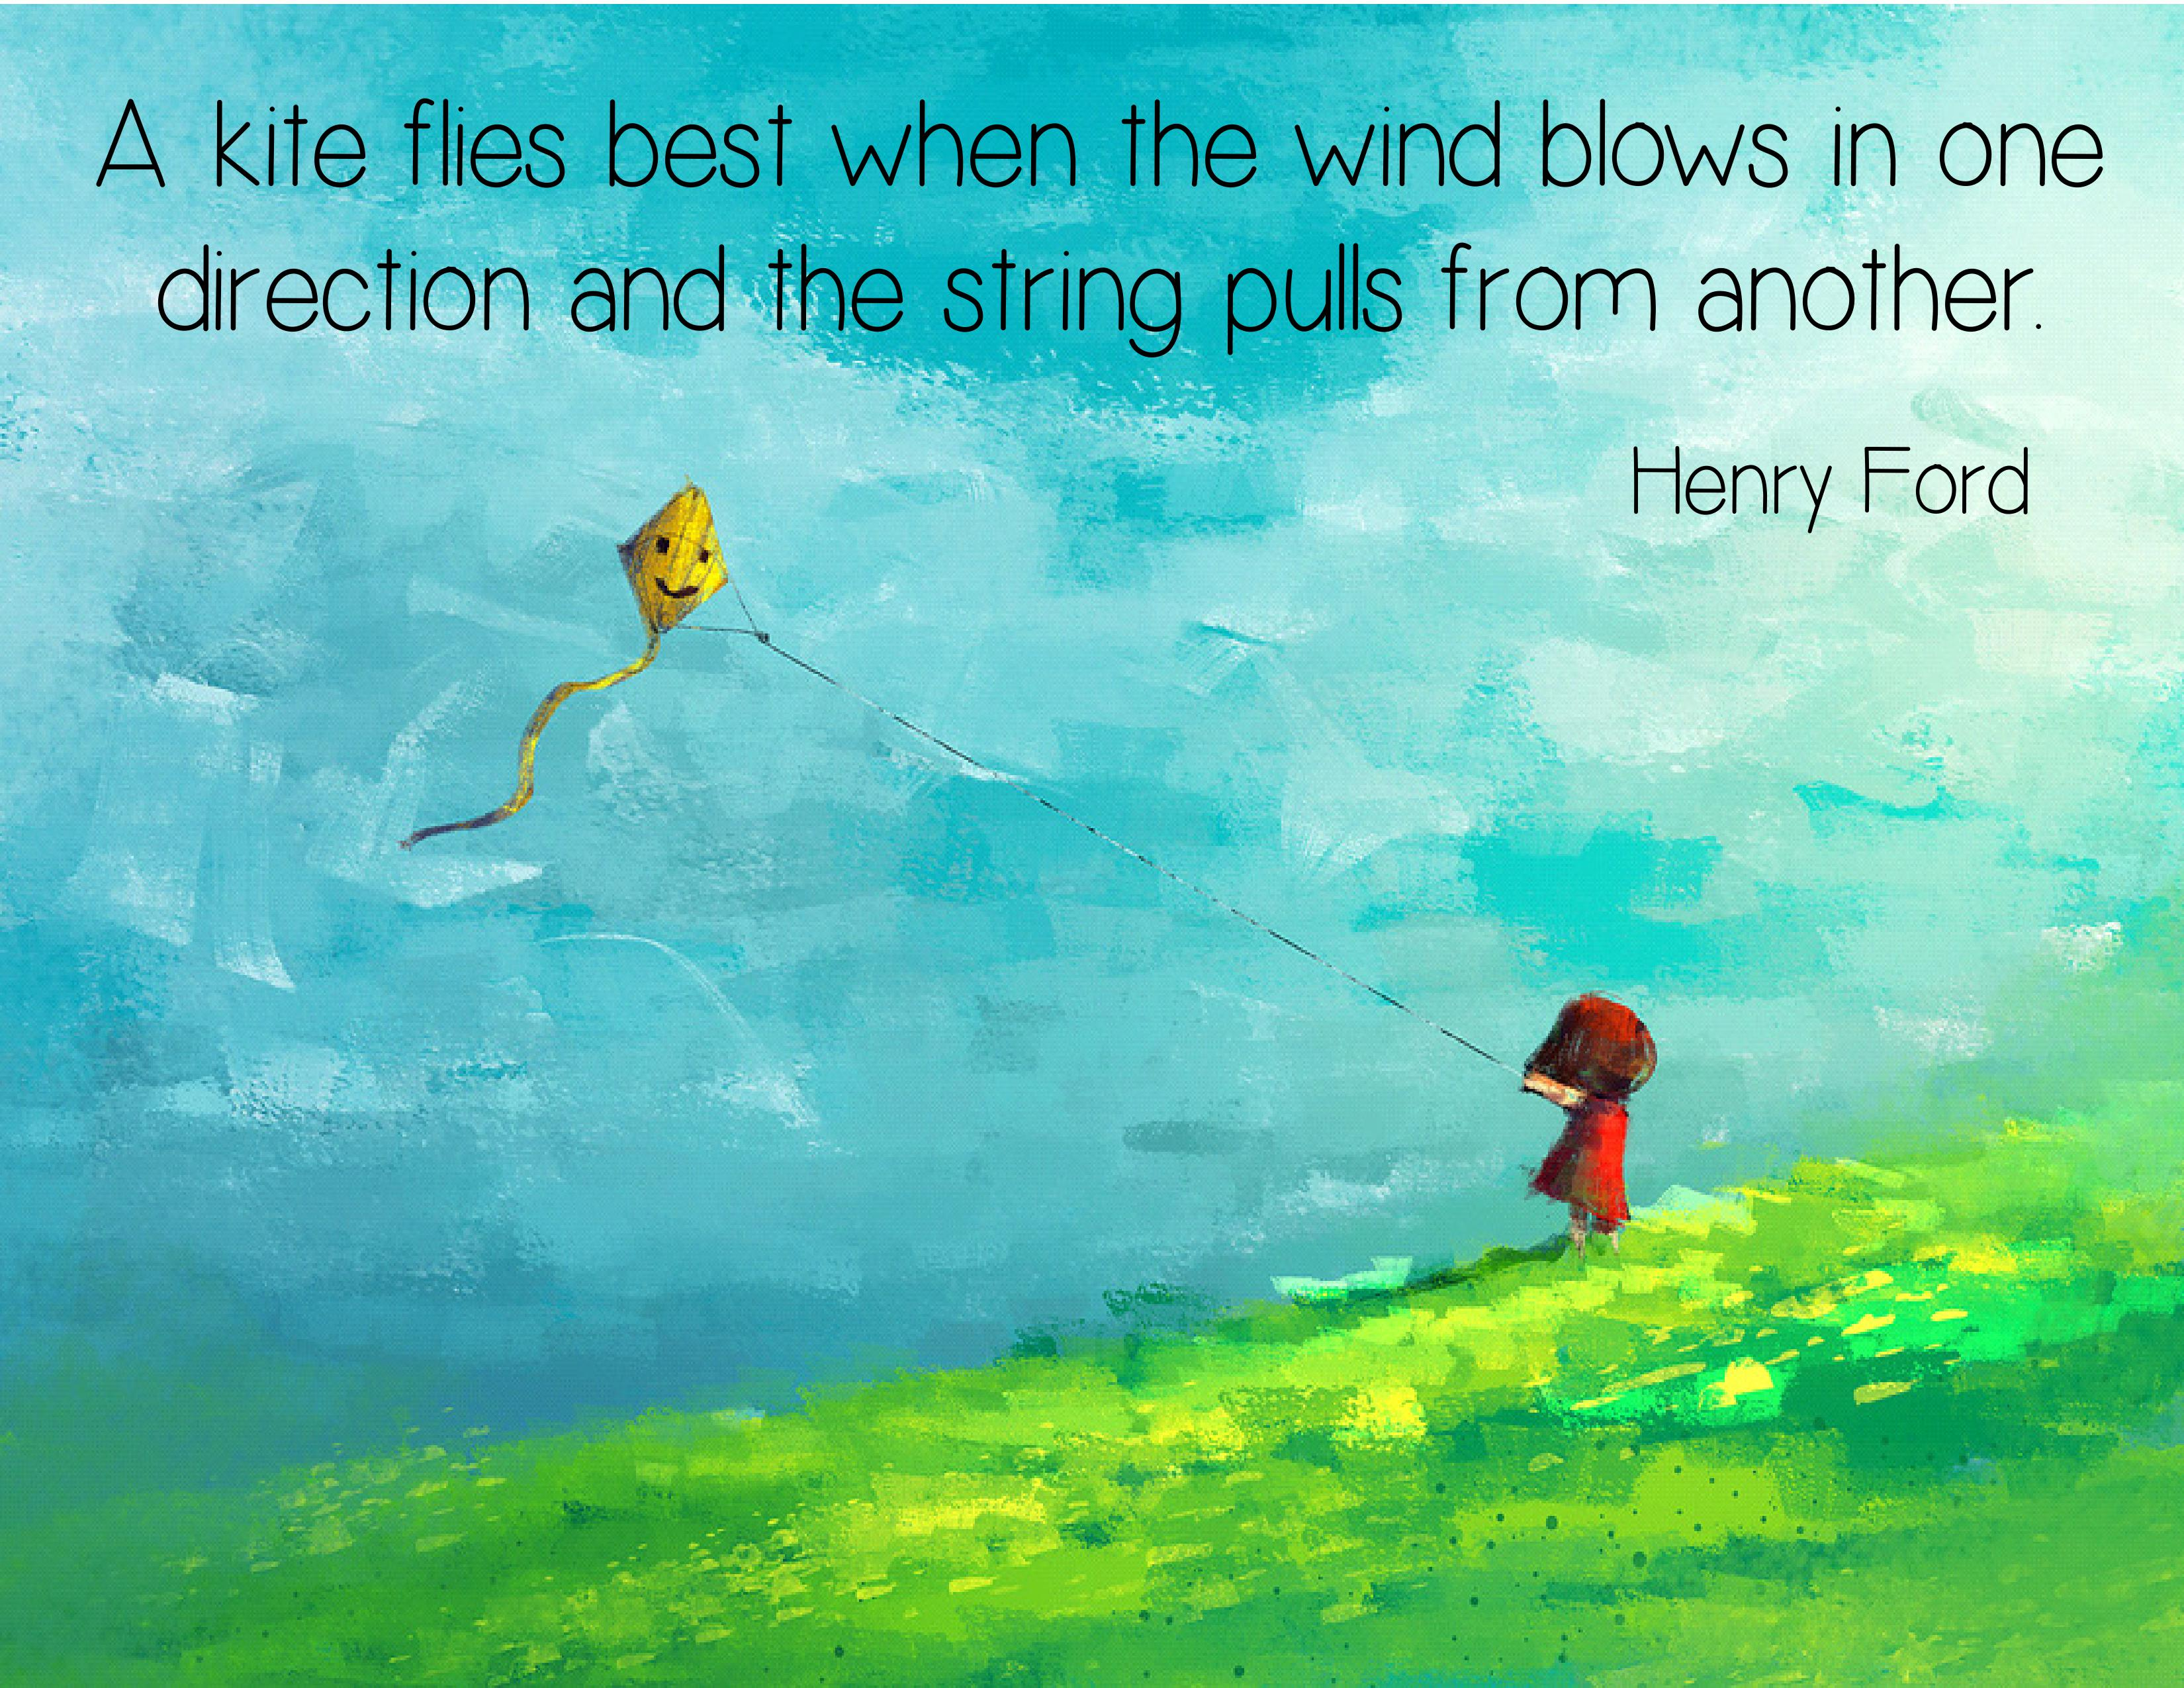 A kite flies best when the wind blows in one direction